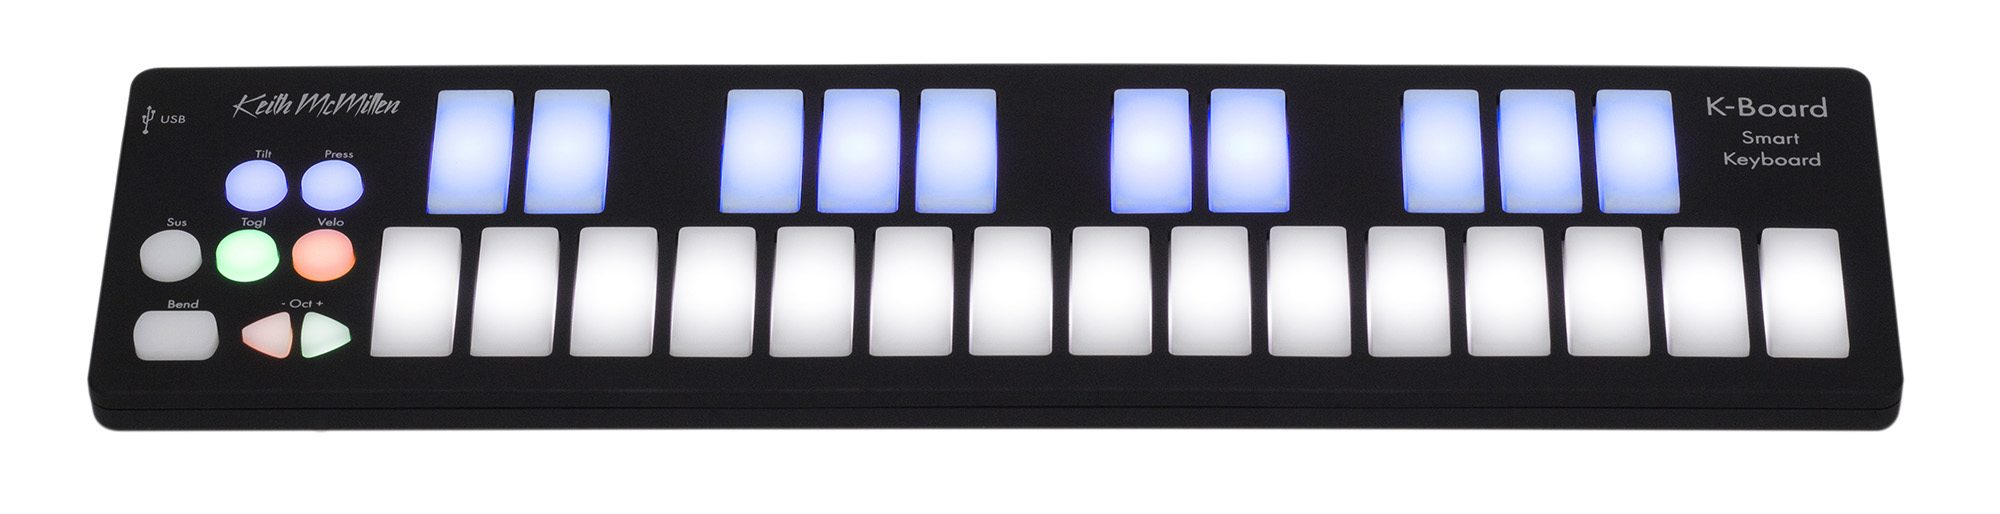 KMI's K-Board USB MIDI Keyboard – Great for Budding Musicians